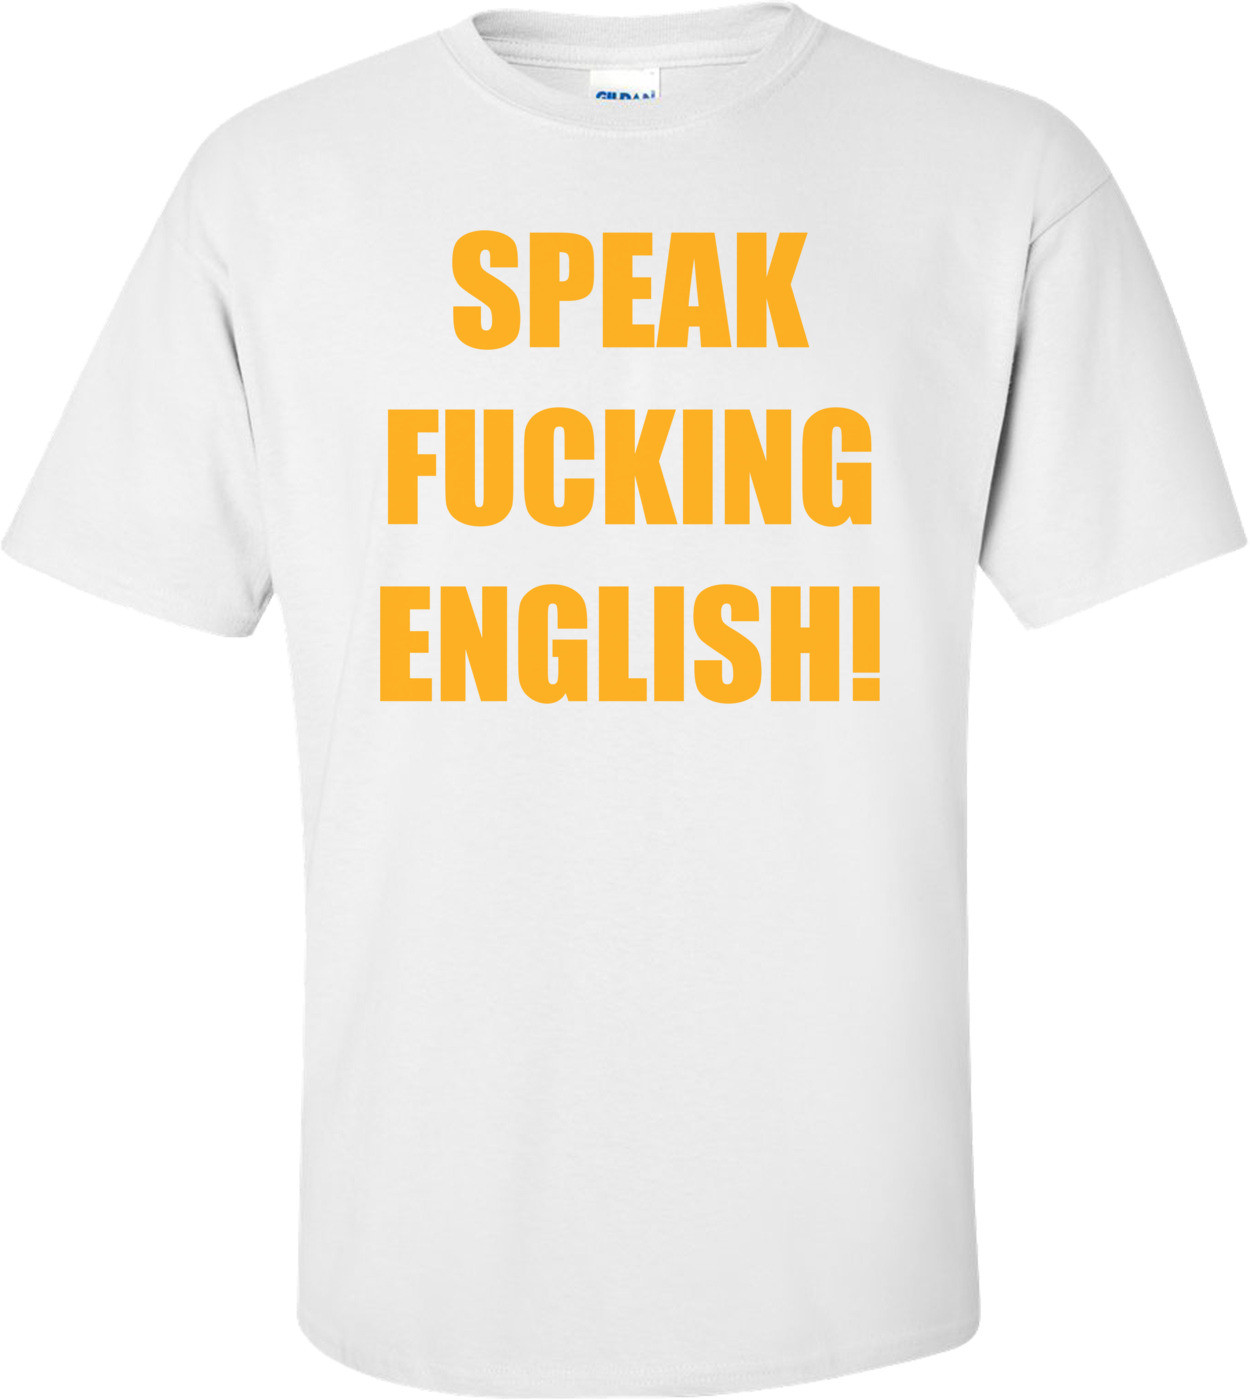 SPEAK FUCKING ENGLISH! Shirt